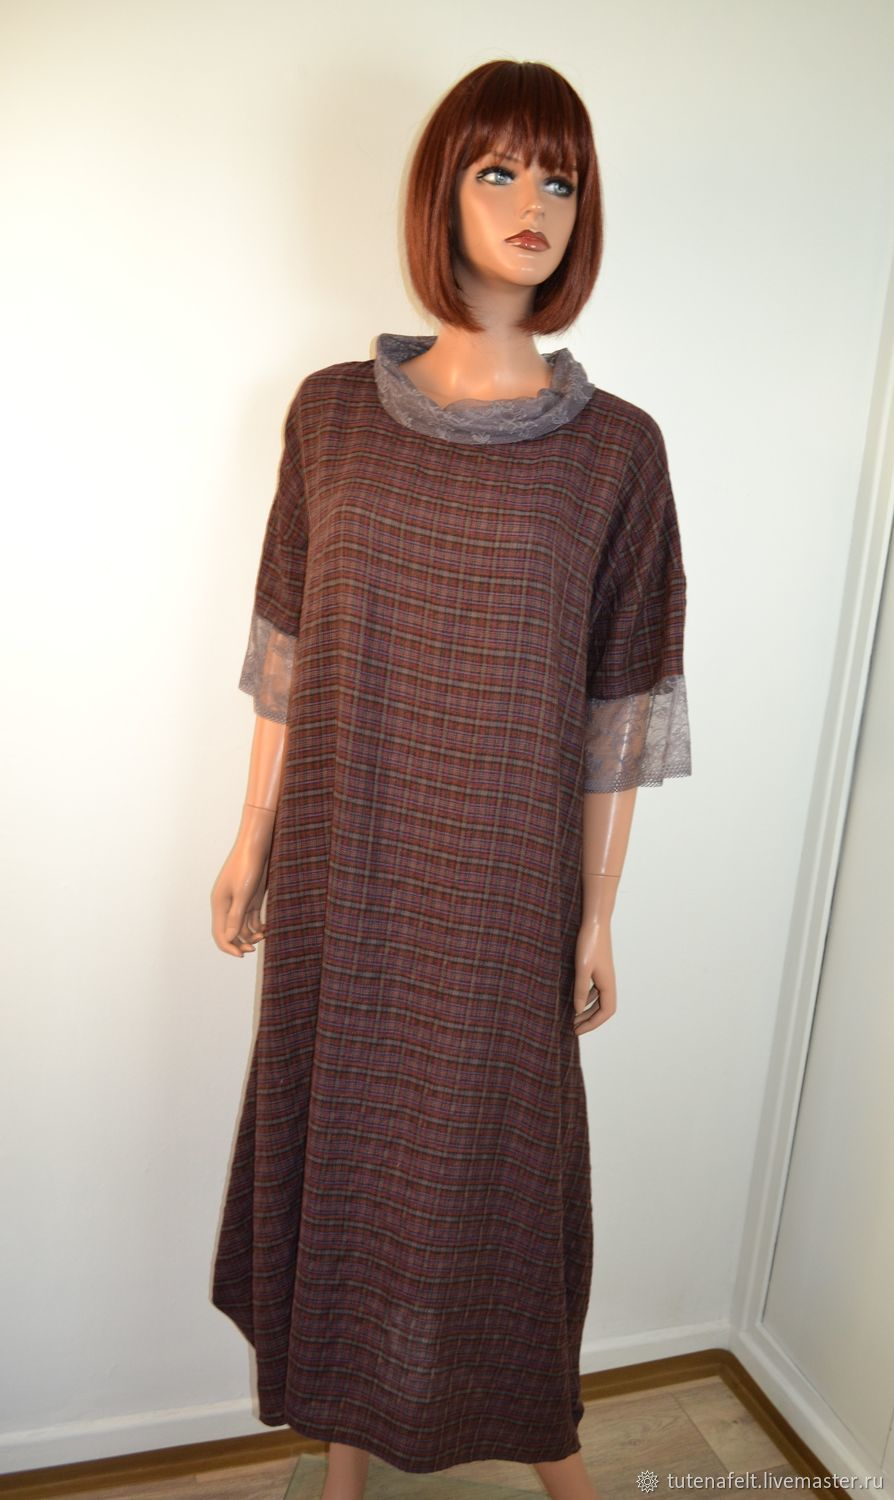 Light boho dress with a loose fit made of viscose a staple with lace, Dresses, Mulhouse,  Фото №1